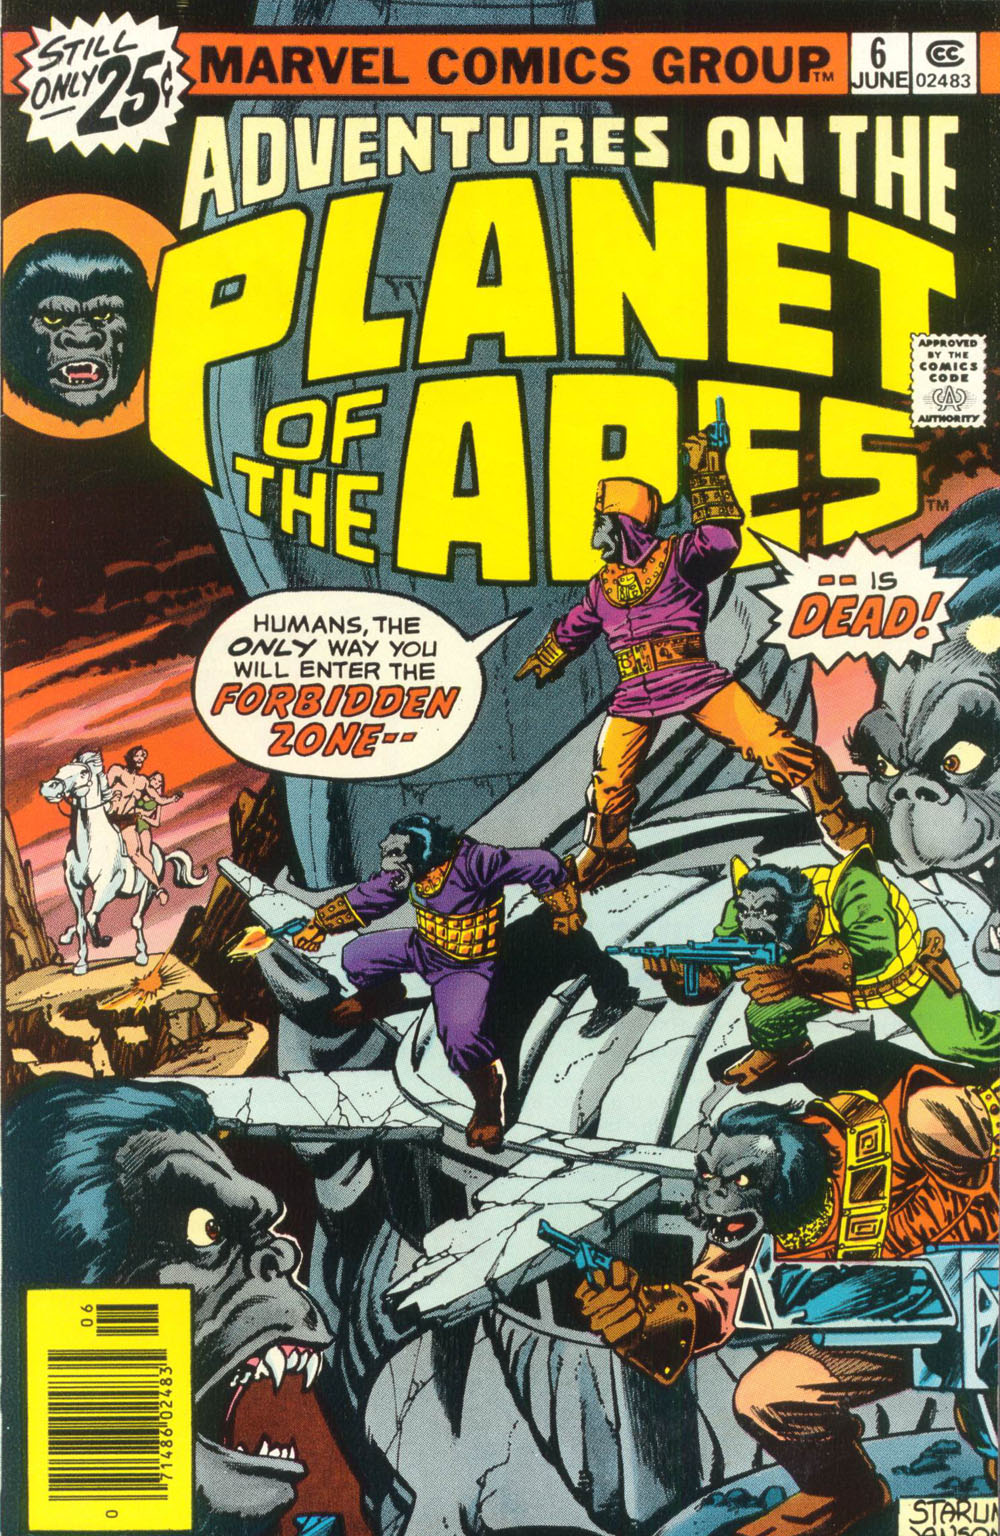 Adventures on the Planet of the Apes 6 Page 1